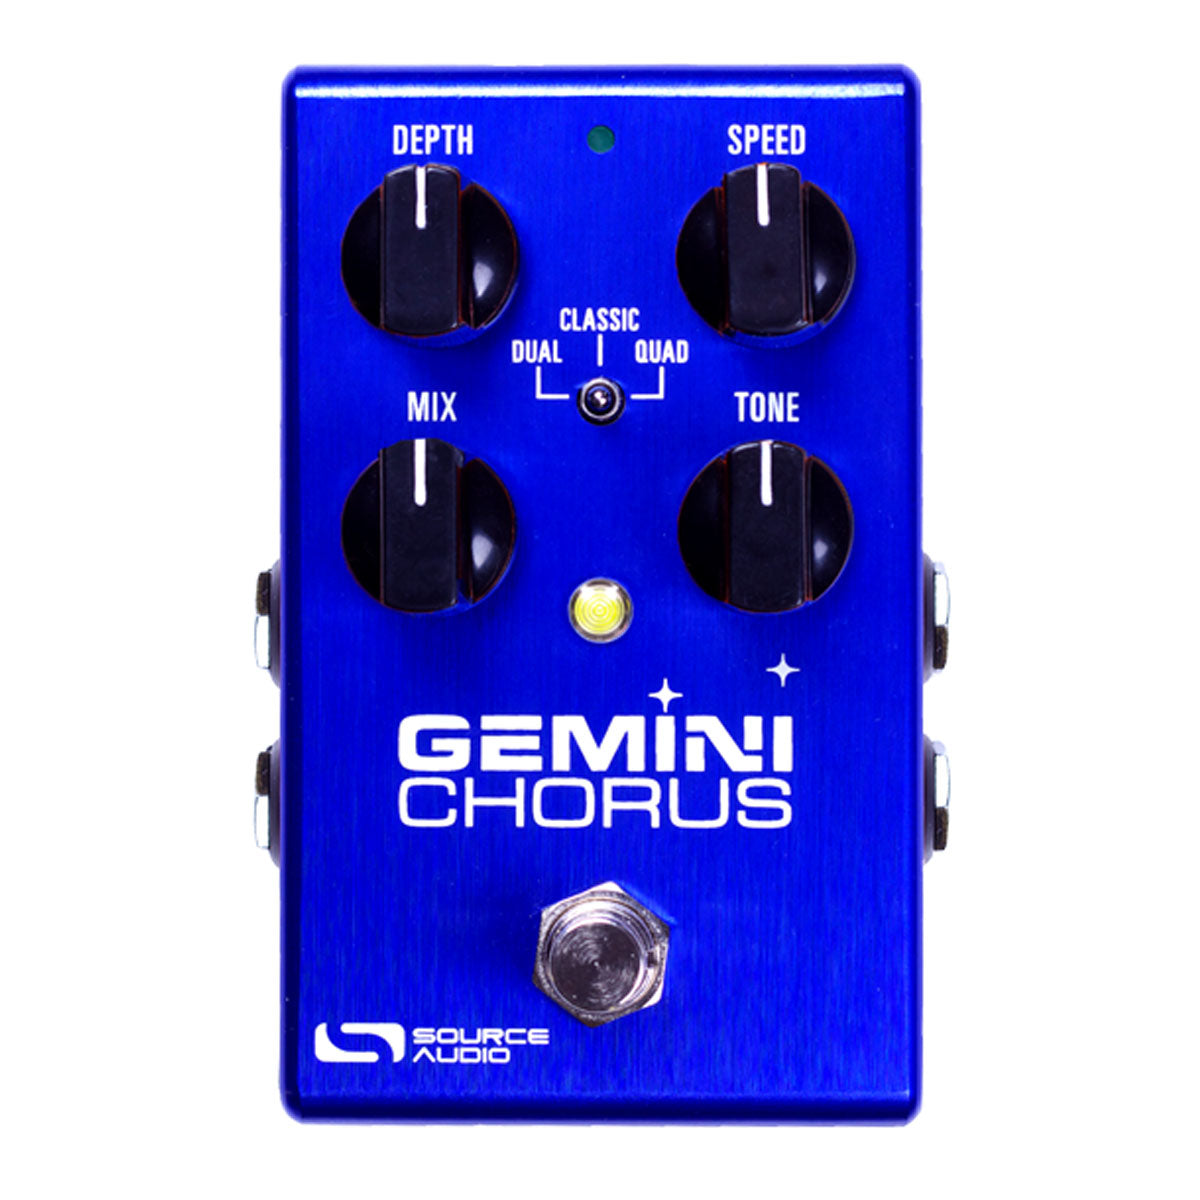 Source Audio One Series Gemini Chorus Effects Pedal